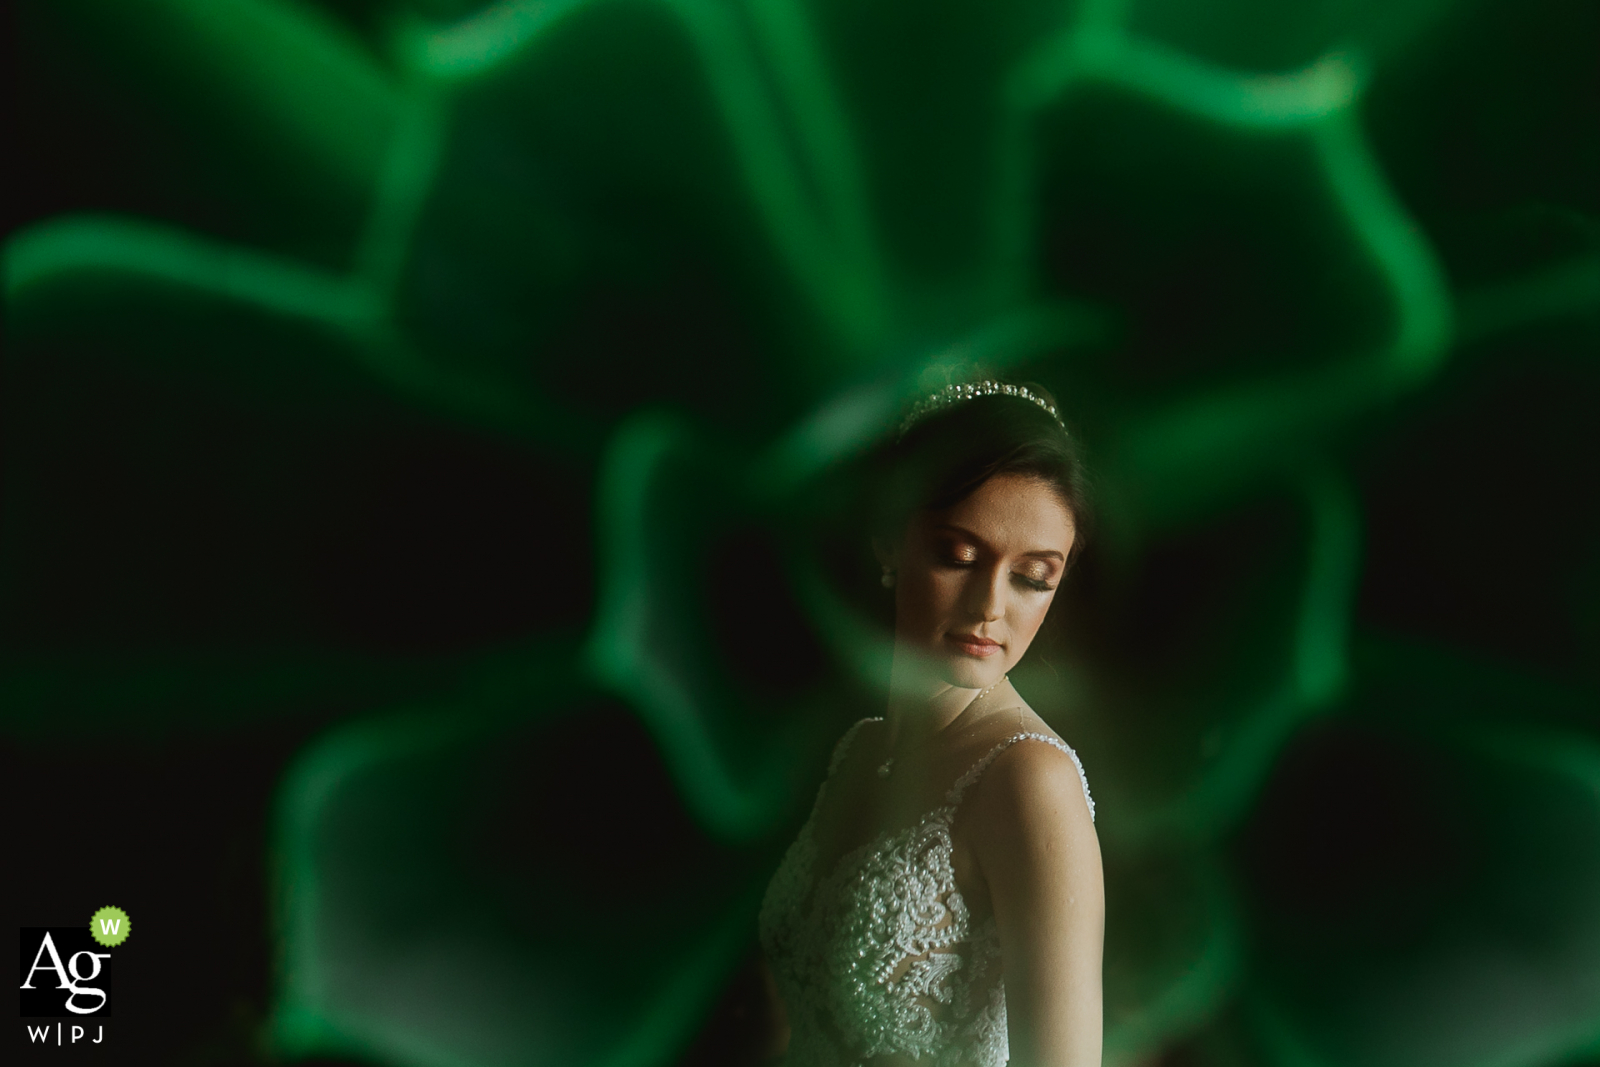 Hotel Weiand Lajeado Brasil wedding venue photo | Portrait of the bride in green image.